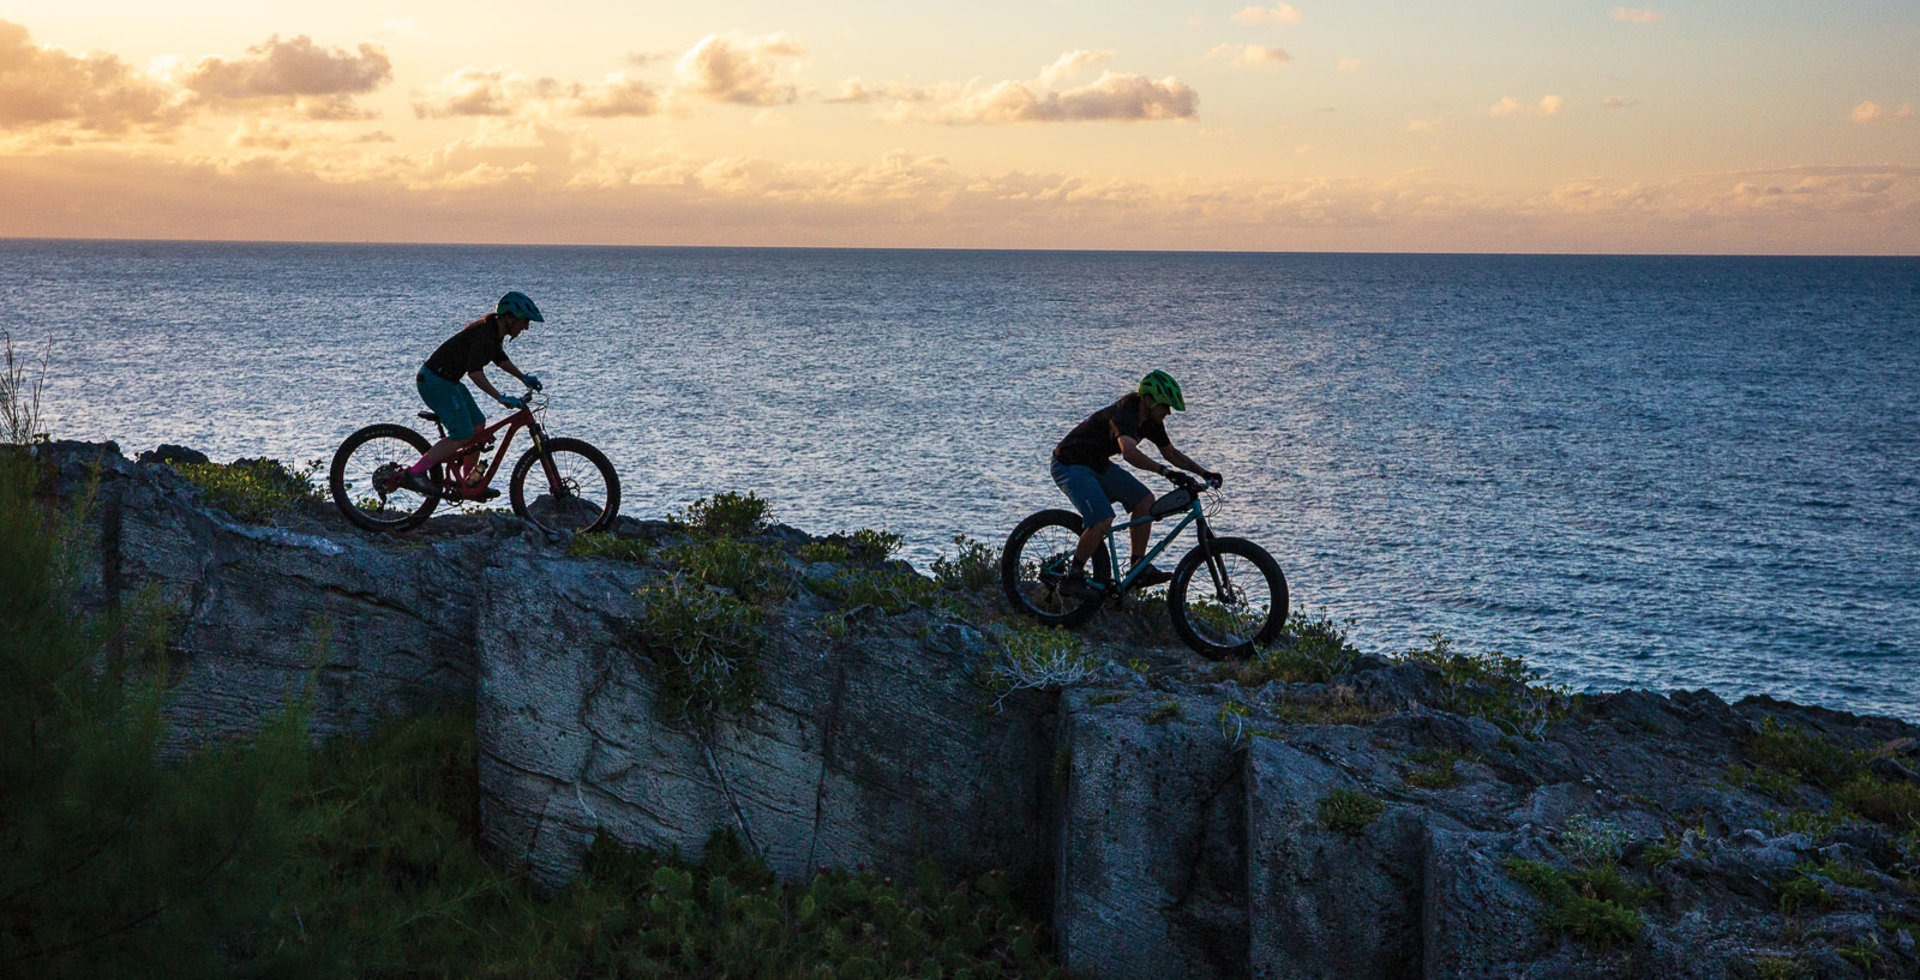 Not much beats cliffside sunset riding in Bermuda. James Holloway shows Brigid Mander some of the local goods.